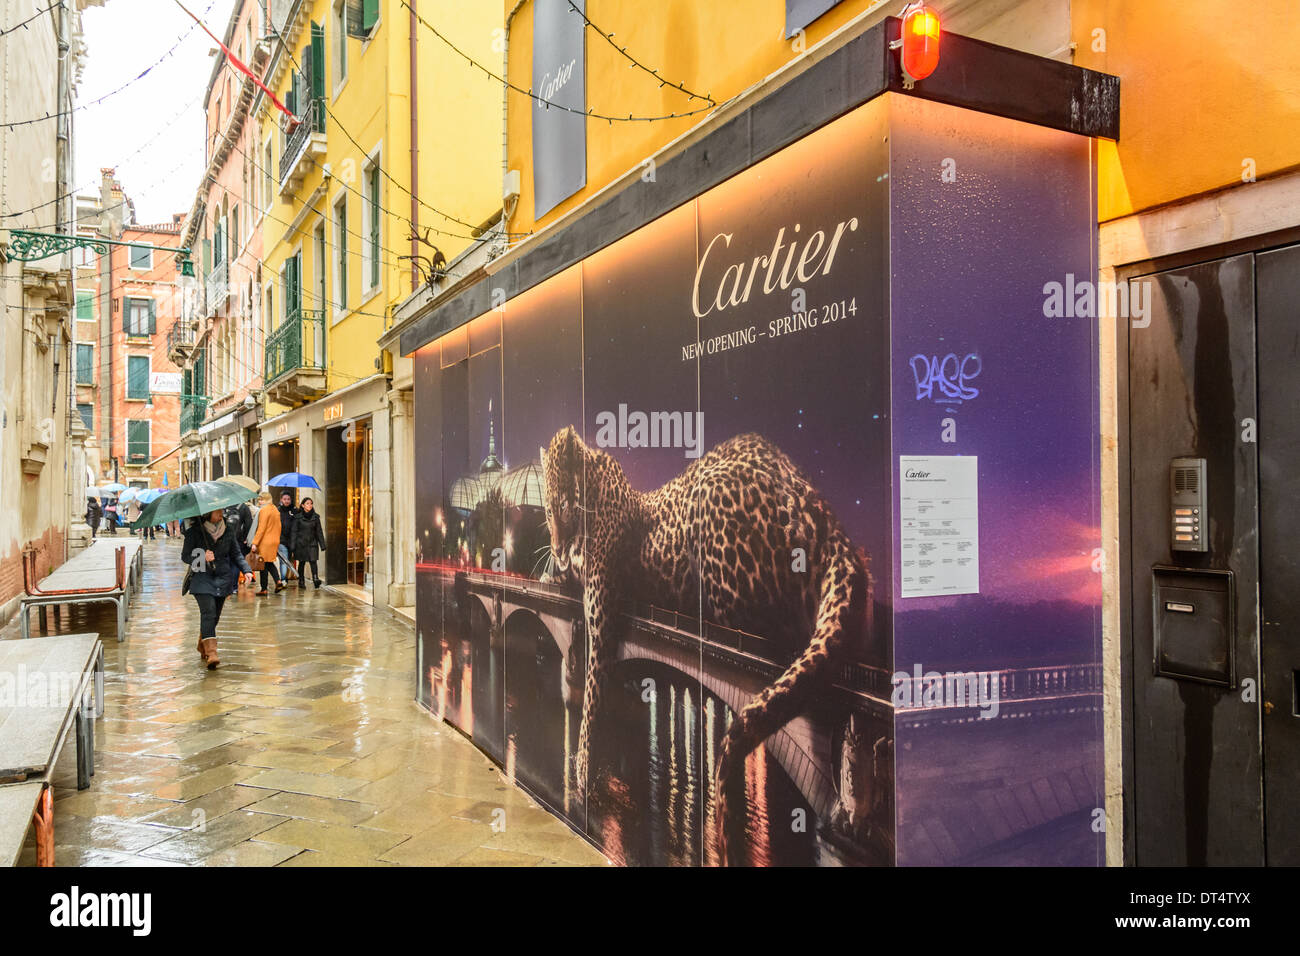 Venice, Italy. Cartier store in a narrow Venetian alley covered for new opening in spring 2014. Stock Photo